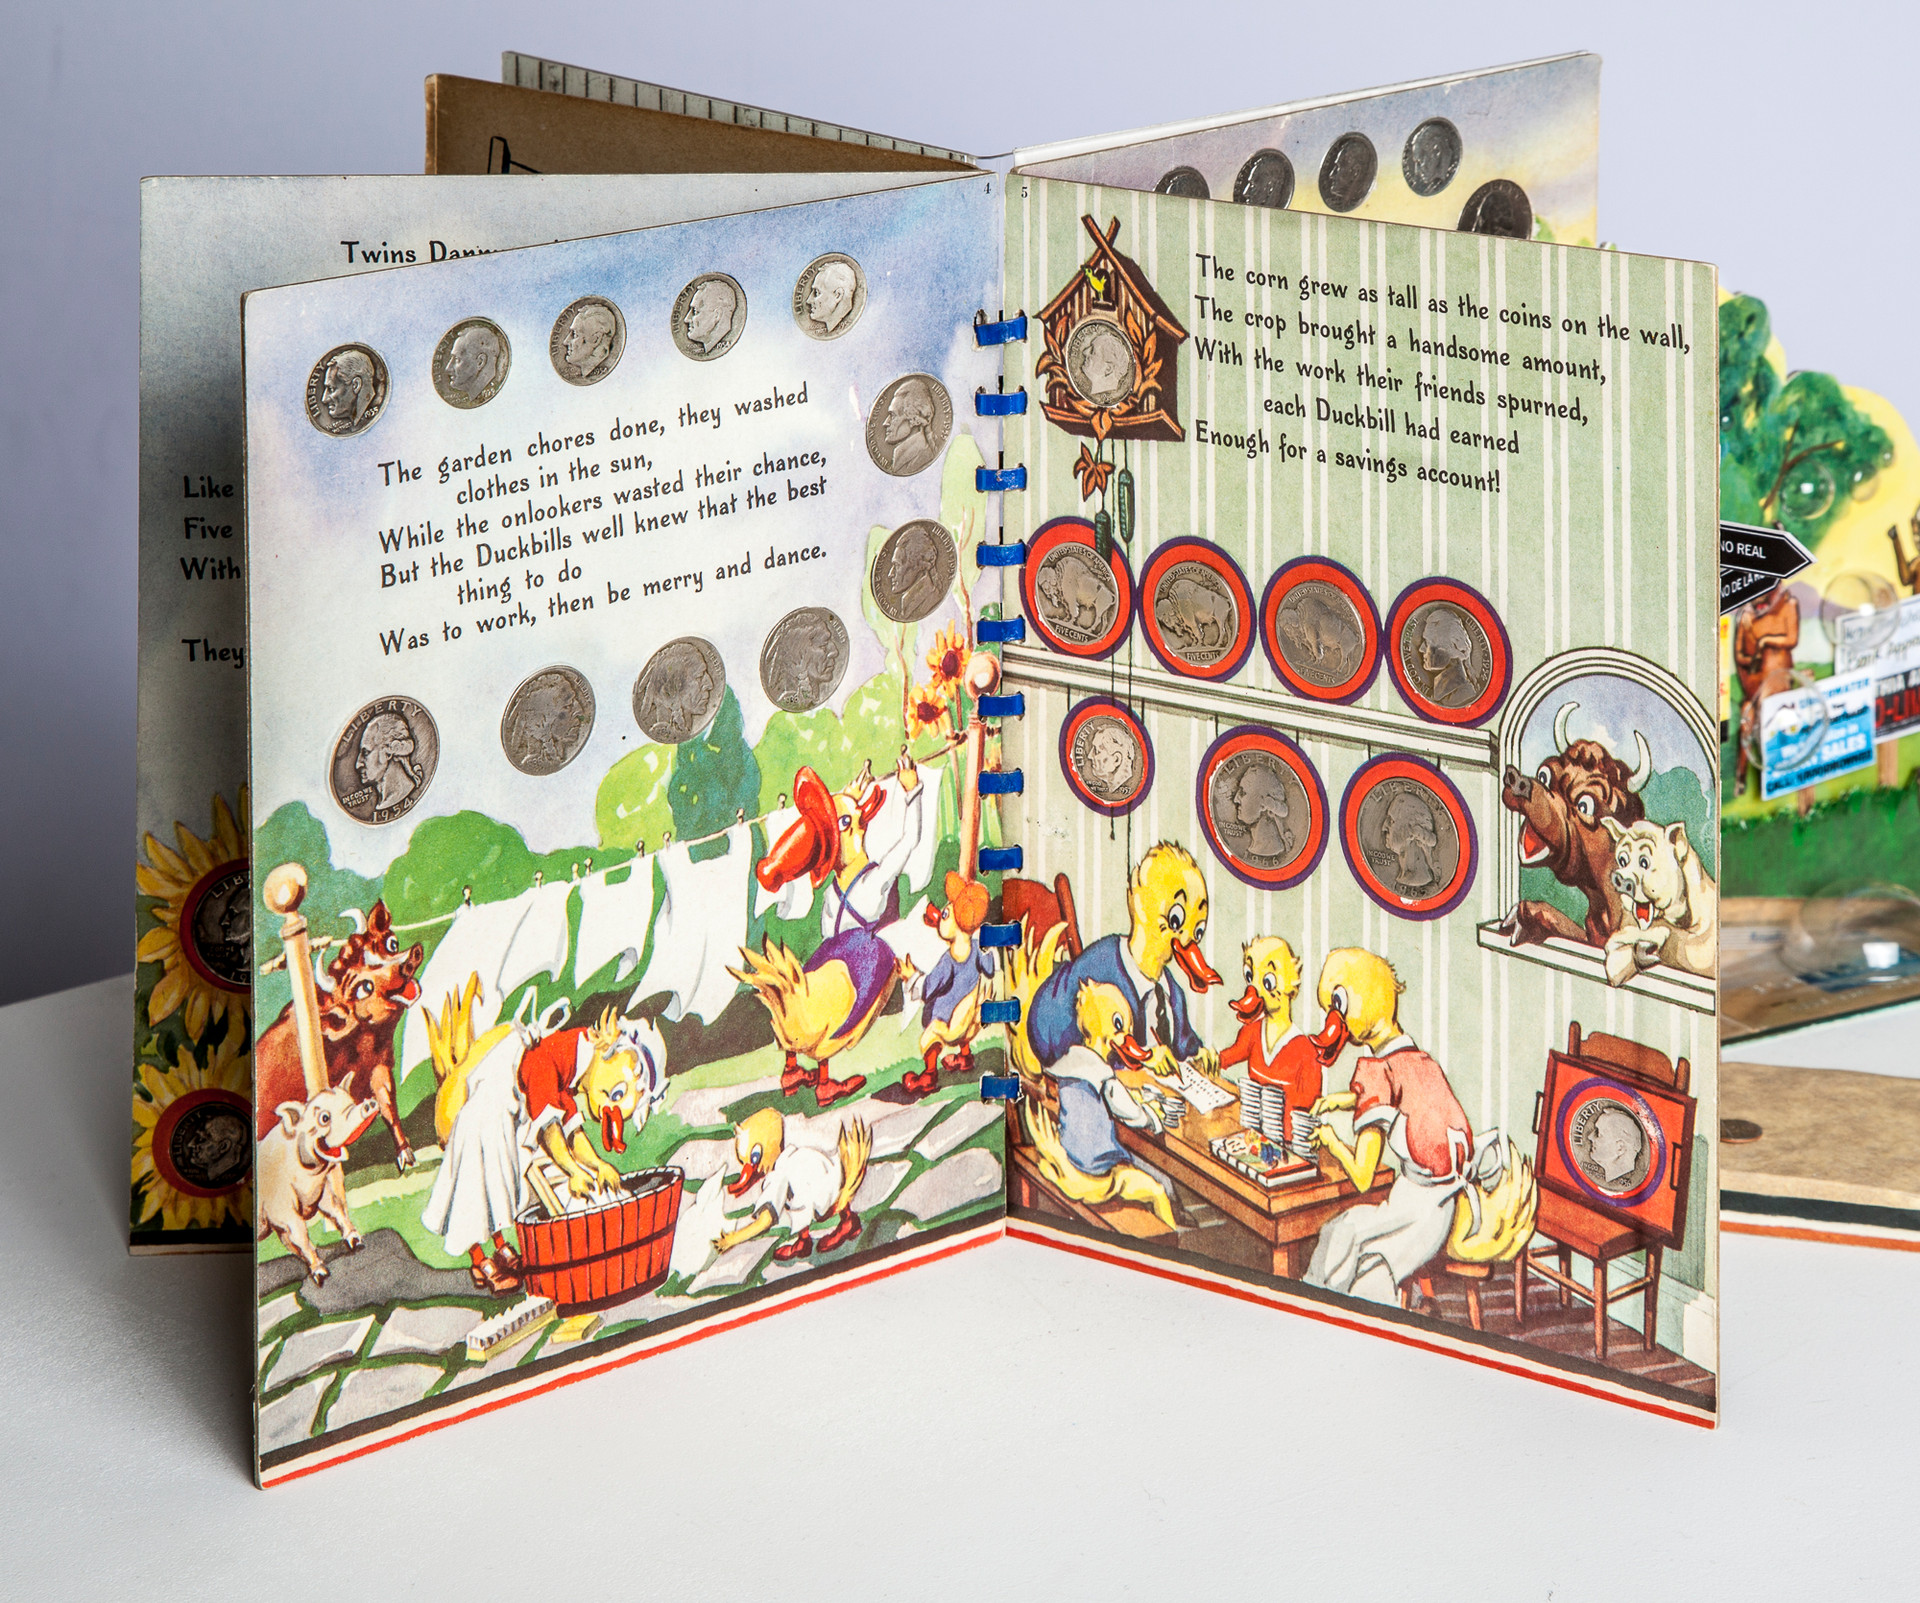 Page 4 and 5. Story continues, emphasizing the Duckbills' work ethic and earning capacity versus the pigs and cows. Vintage nickels, dimes and quarters in book, while dark with oxidation at the beginning, become increasingly shiny indicating the passage of time.